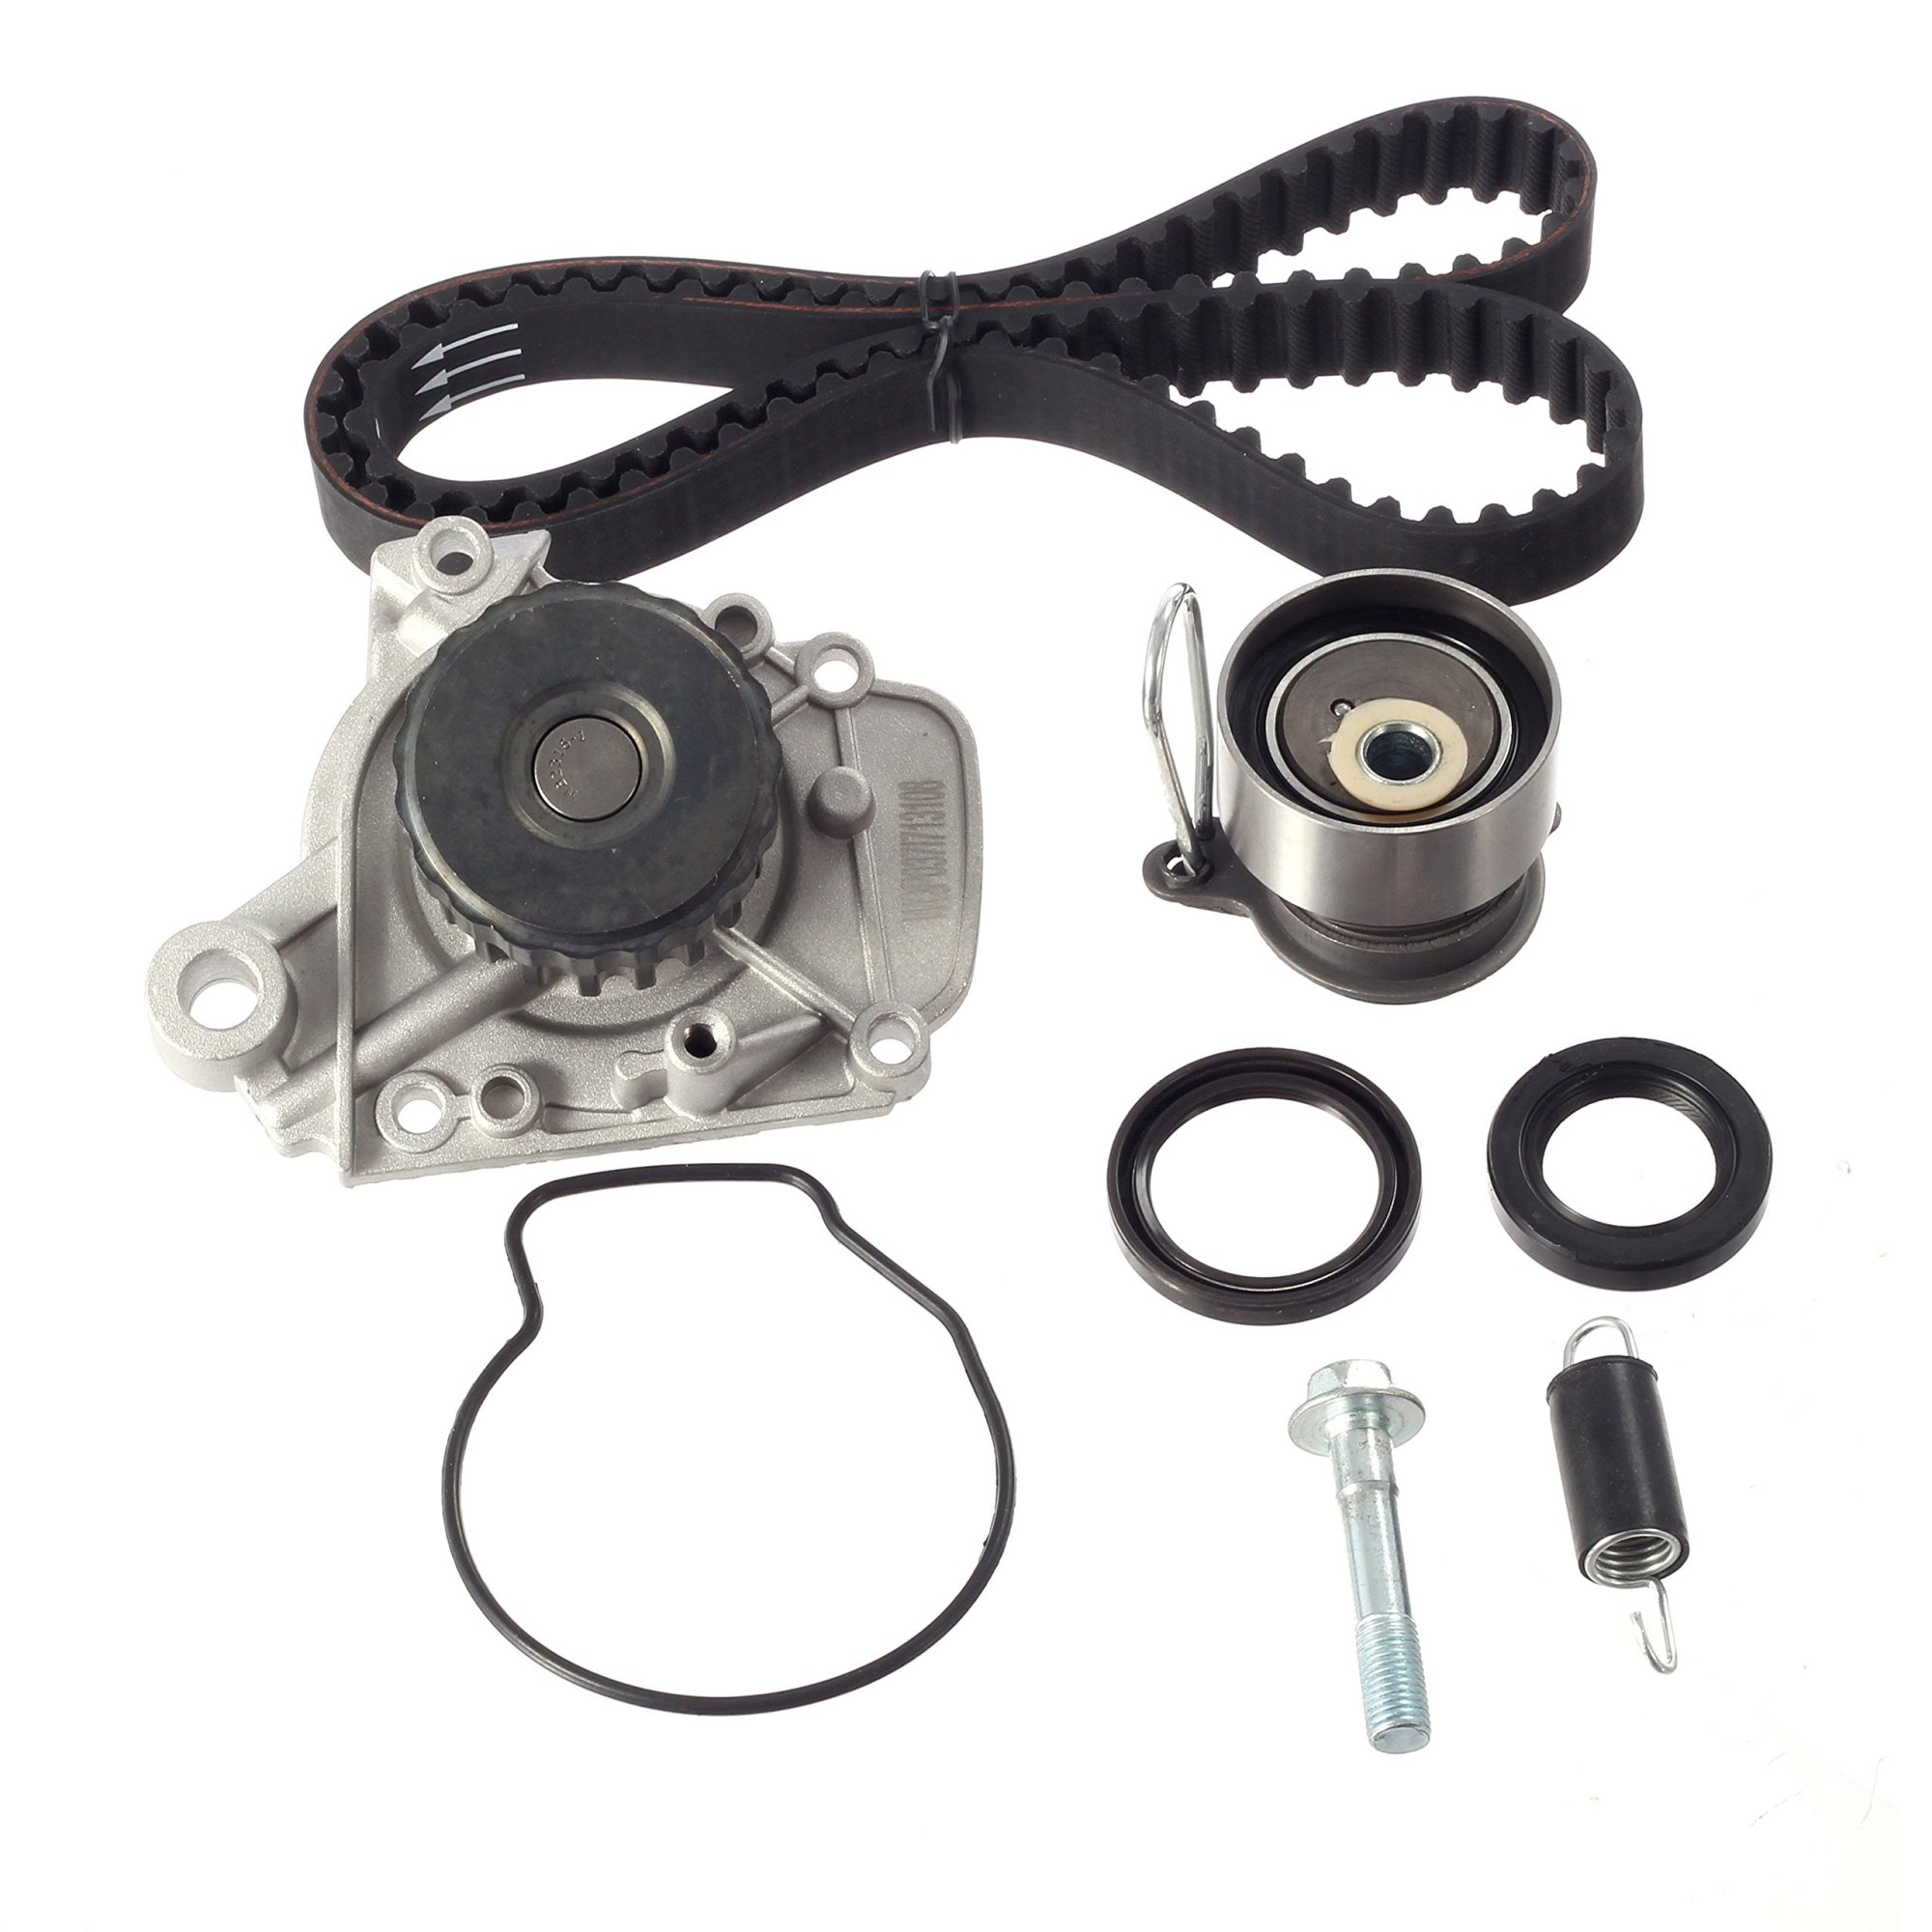 hight resolution of get quotations tbk312vc honda civic dx ex gx lx 1 7 timing seal d17a timing belt kit valve cover